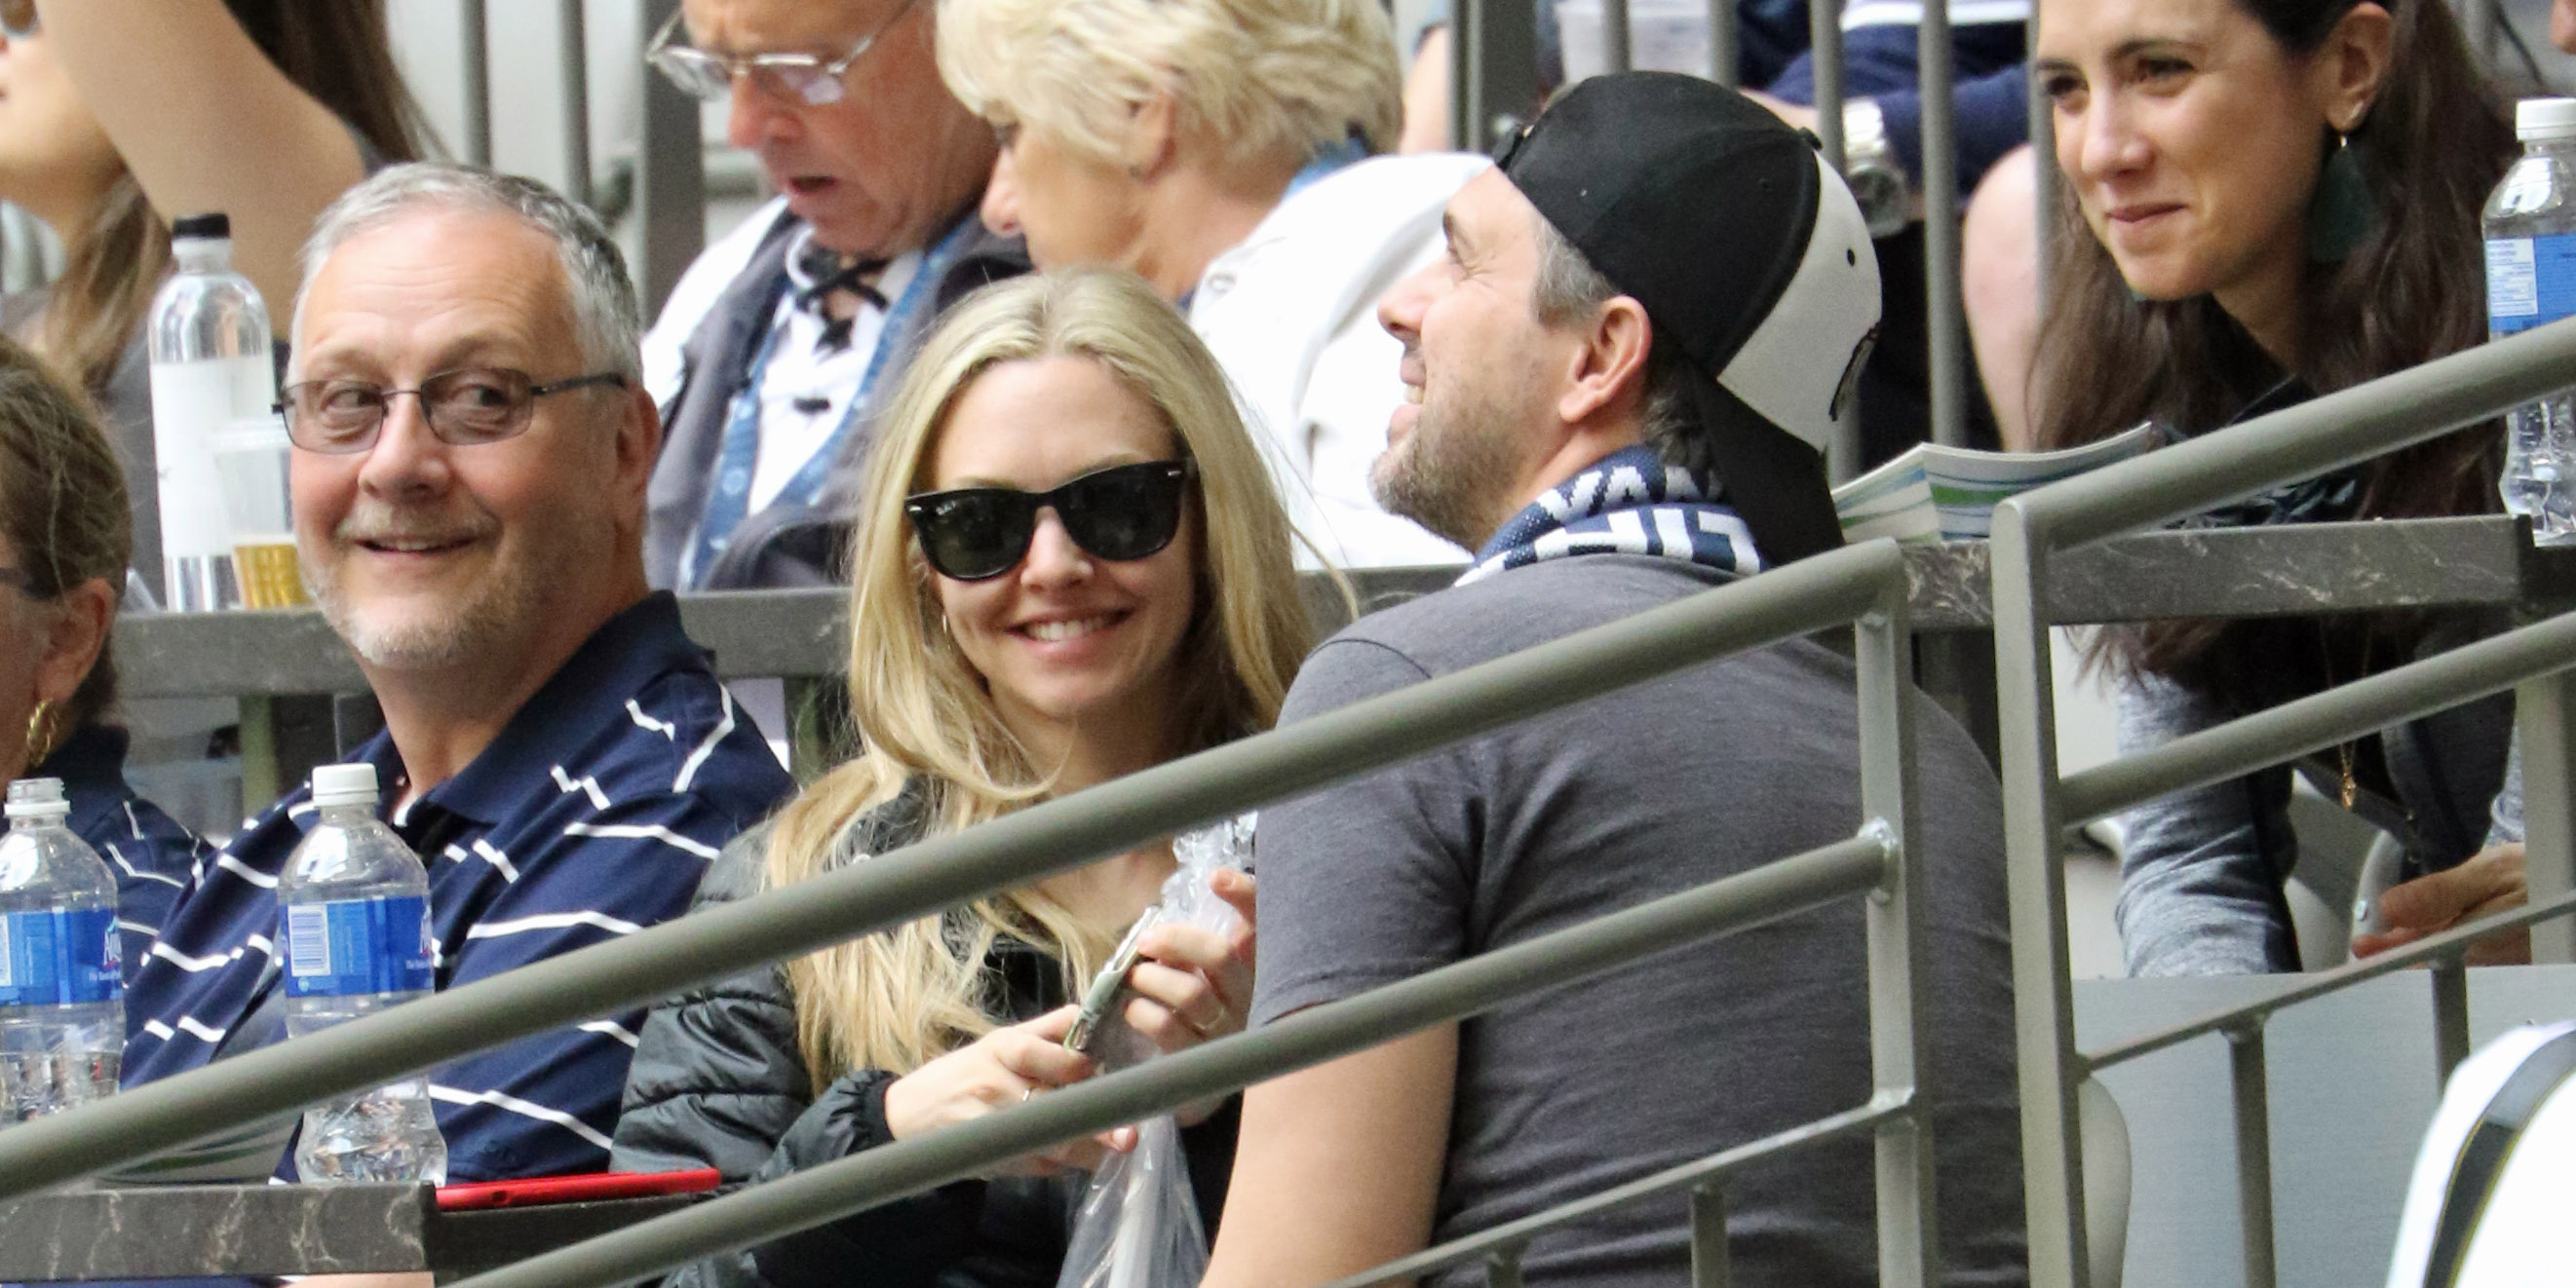 Amanda Seyfried spotted enjoying date night at Vancouver Whitecaps game (PHOTOS)